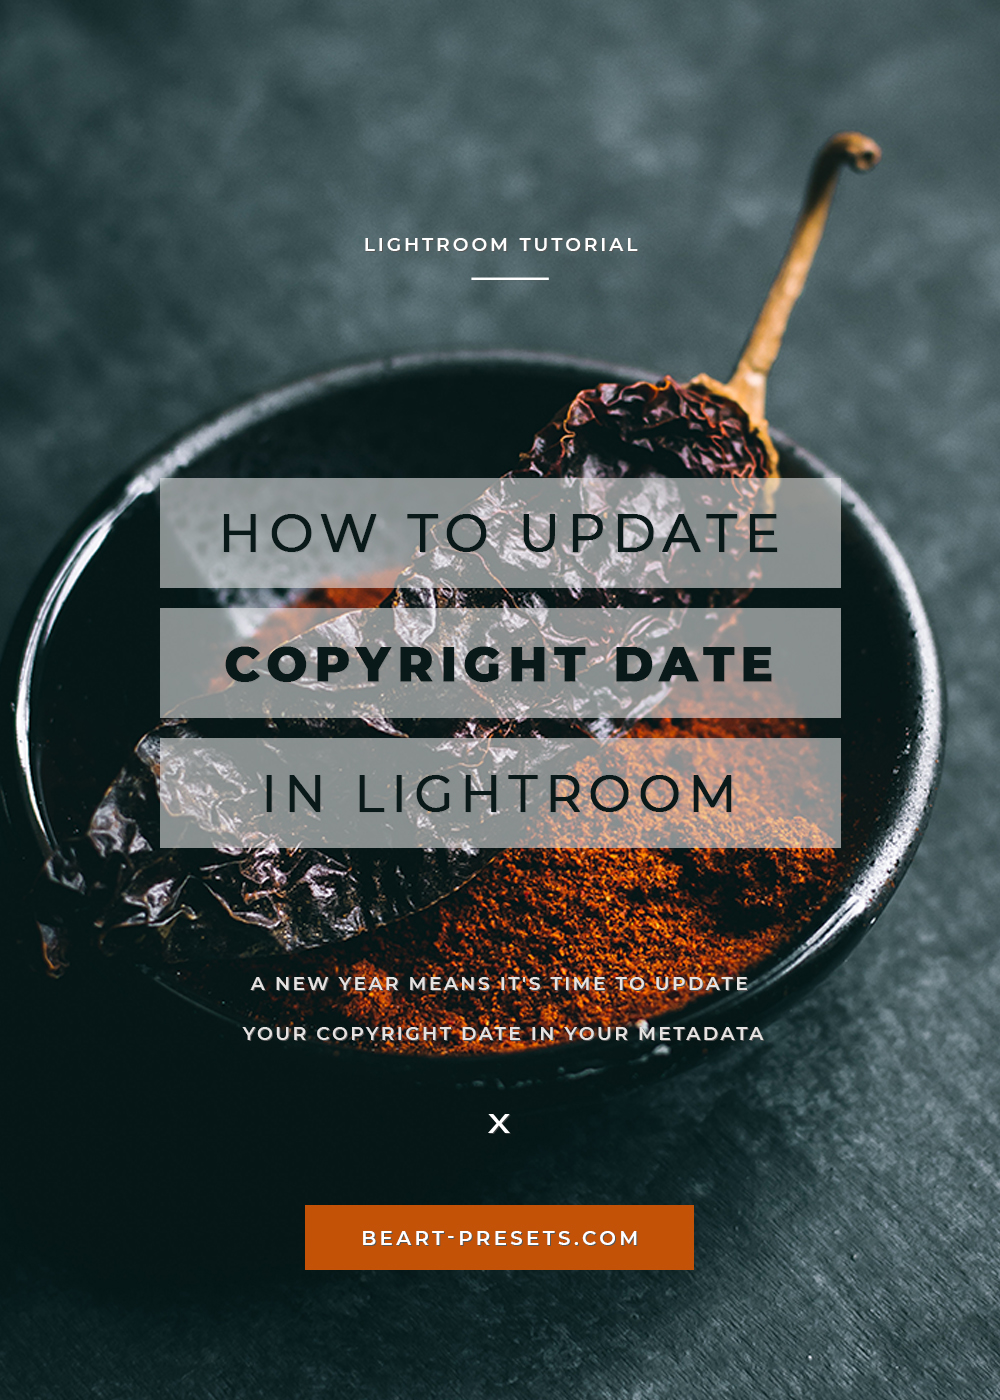 update your copyright date in your metadata